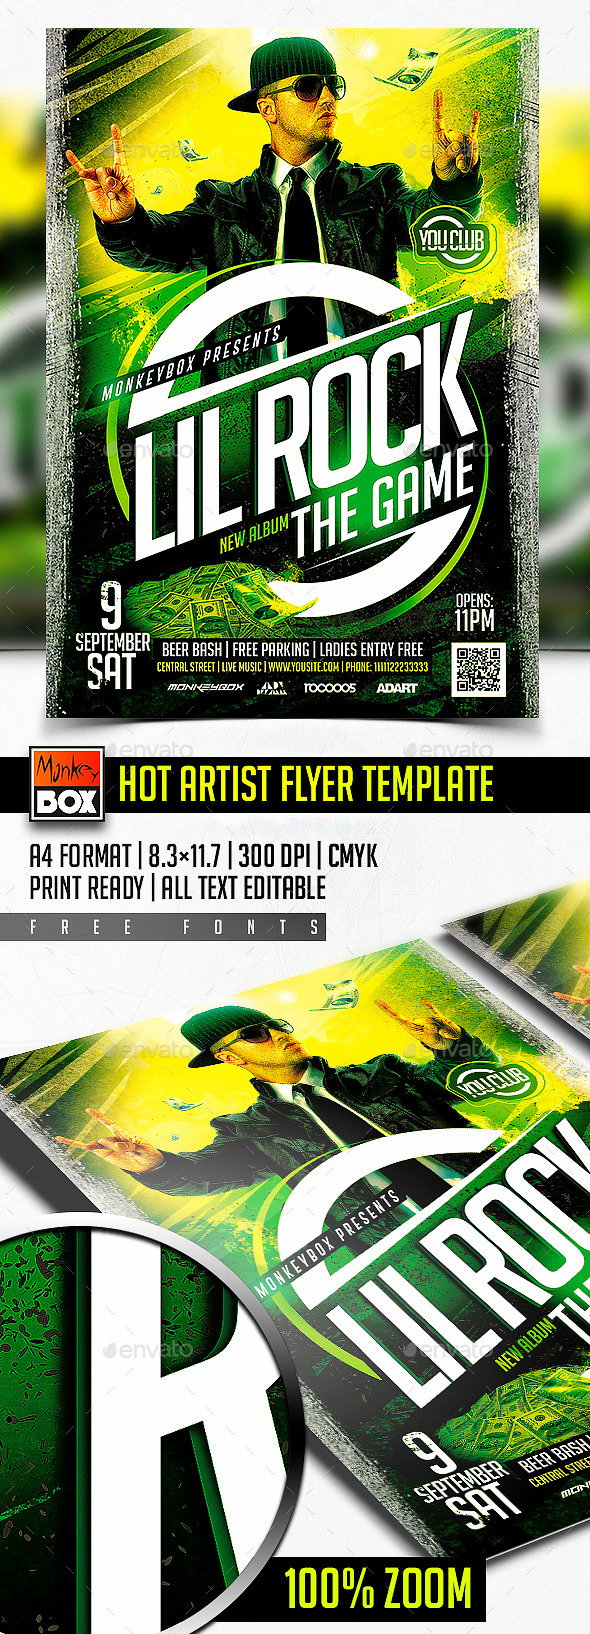 Hot Artist Flyer Template